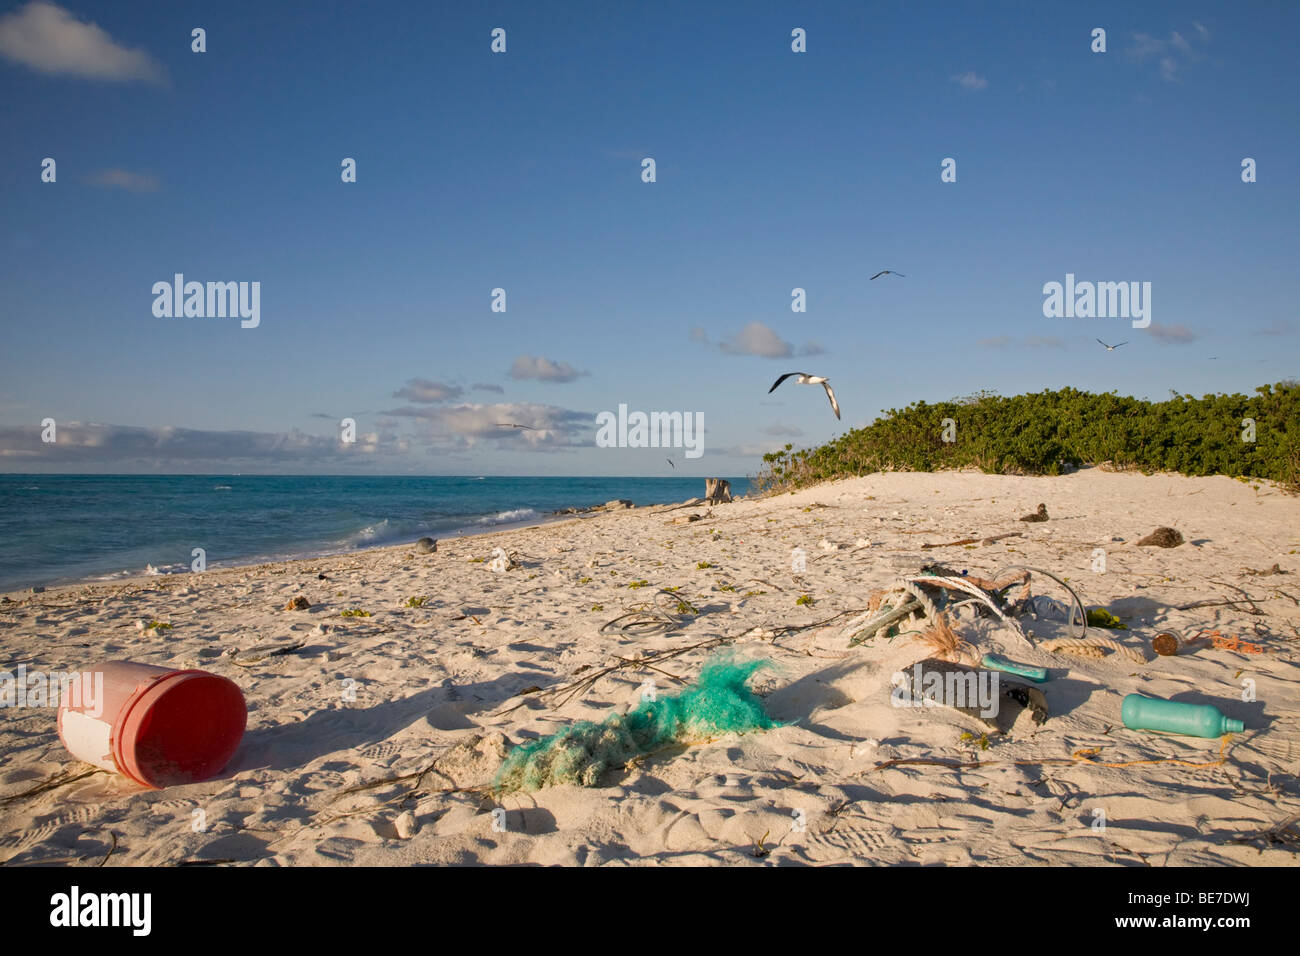 Marine debris washed ashore on beach of a North Pacific island - Stock Image